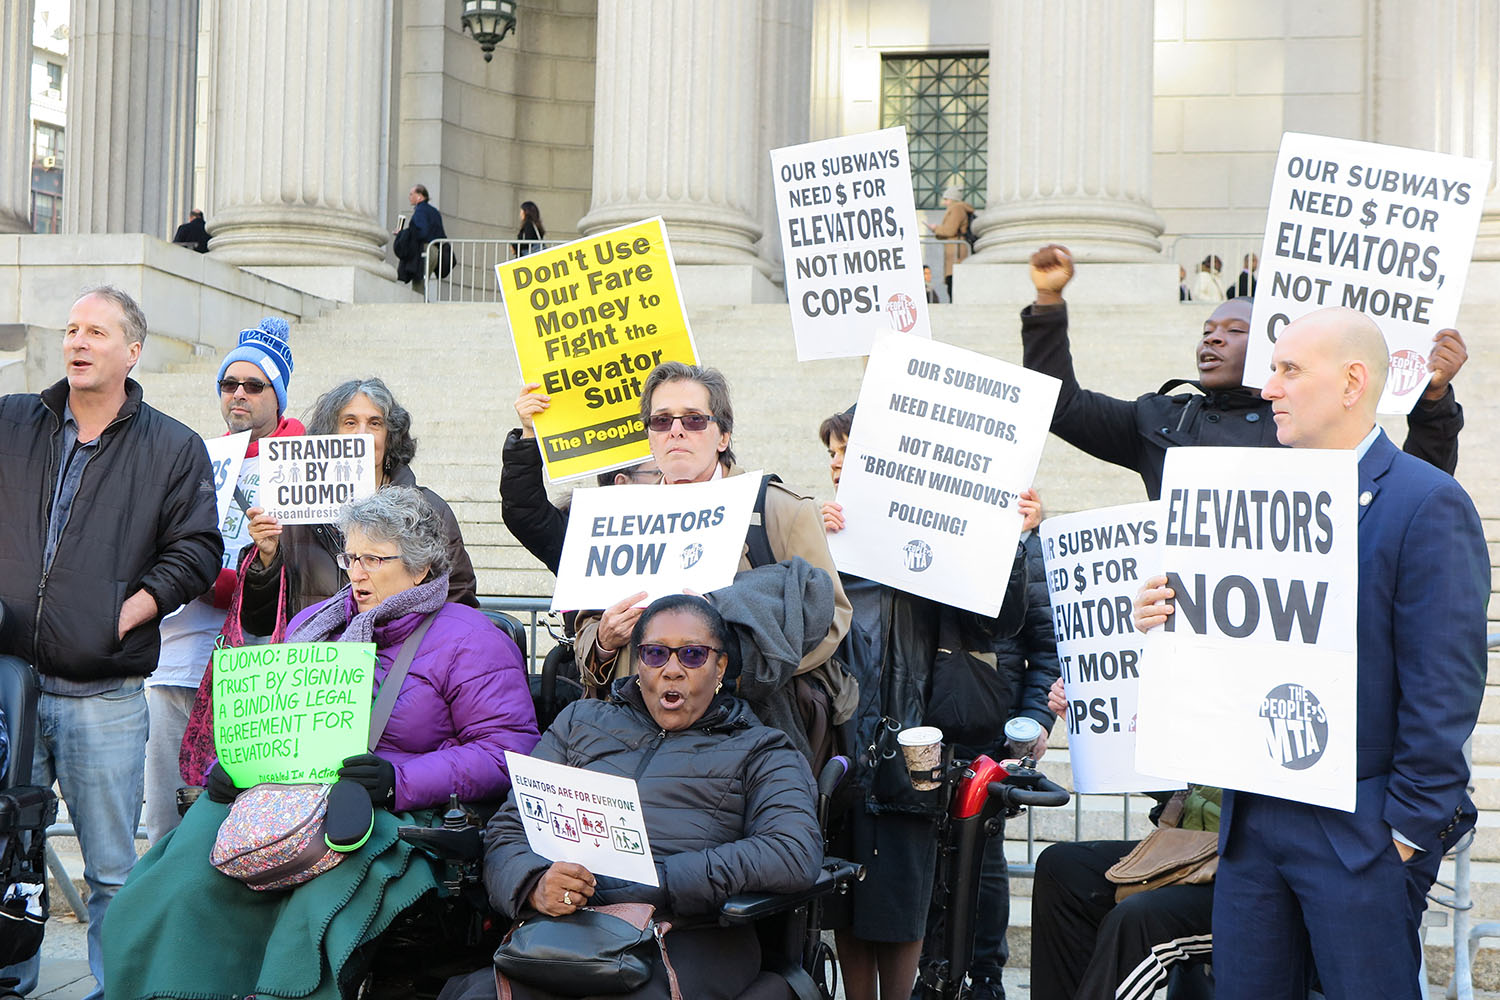 | Members of Peoples MTA Rise and Resists Elevator Action Group Disabled In Action and the Peoples Power Assemblies NYC protest at the base of the New York State Supreme Court Building | MR Online